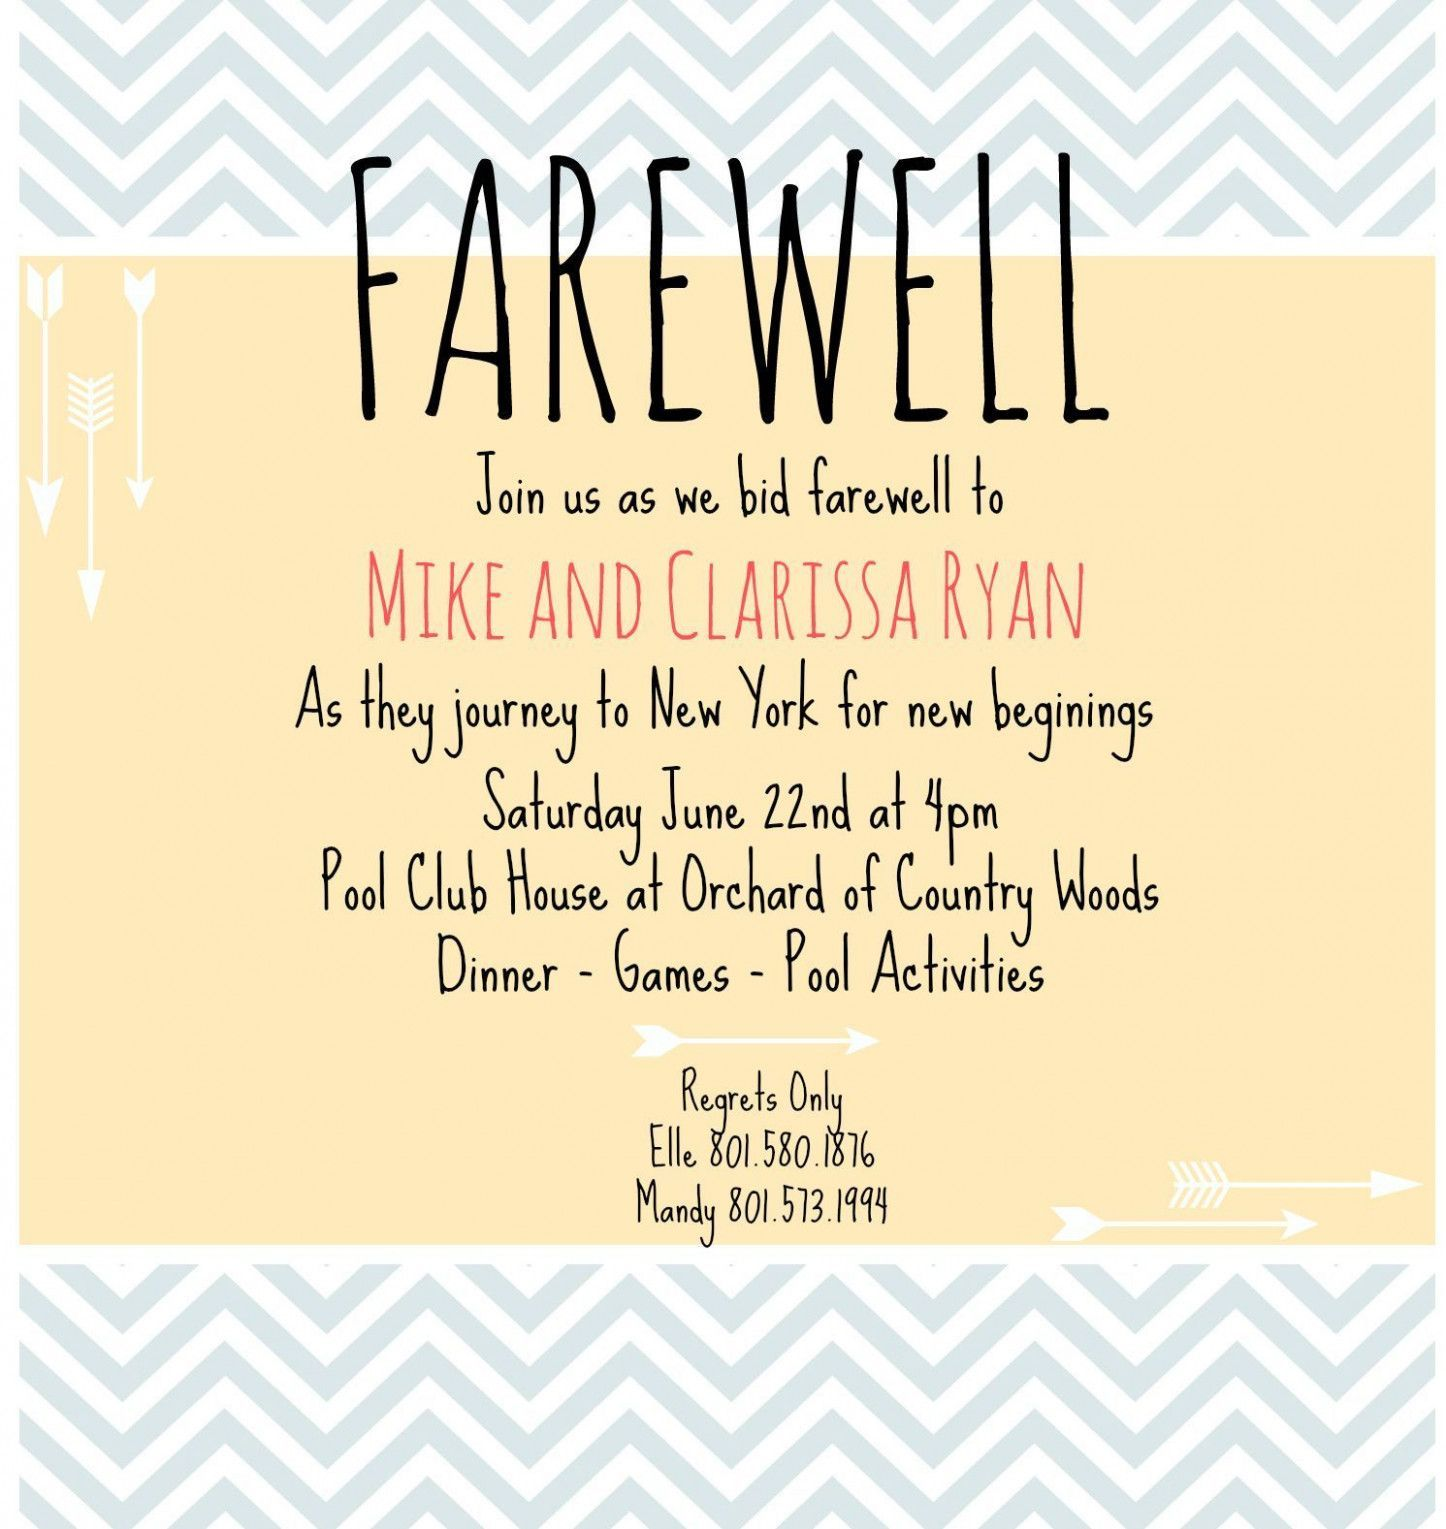 9 Awesome Card Design For Farewell Invitation Farewell Invitation Card Going Away Party Invitations Farewell Party Invitations